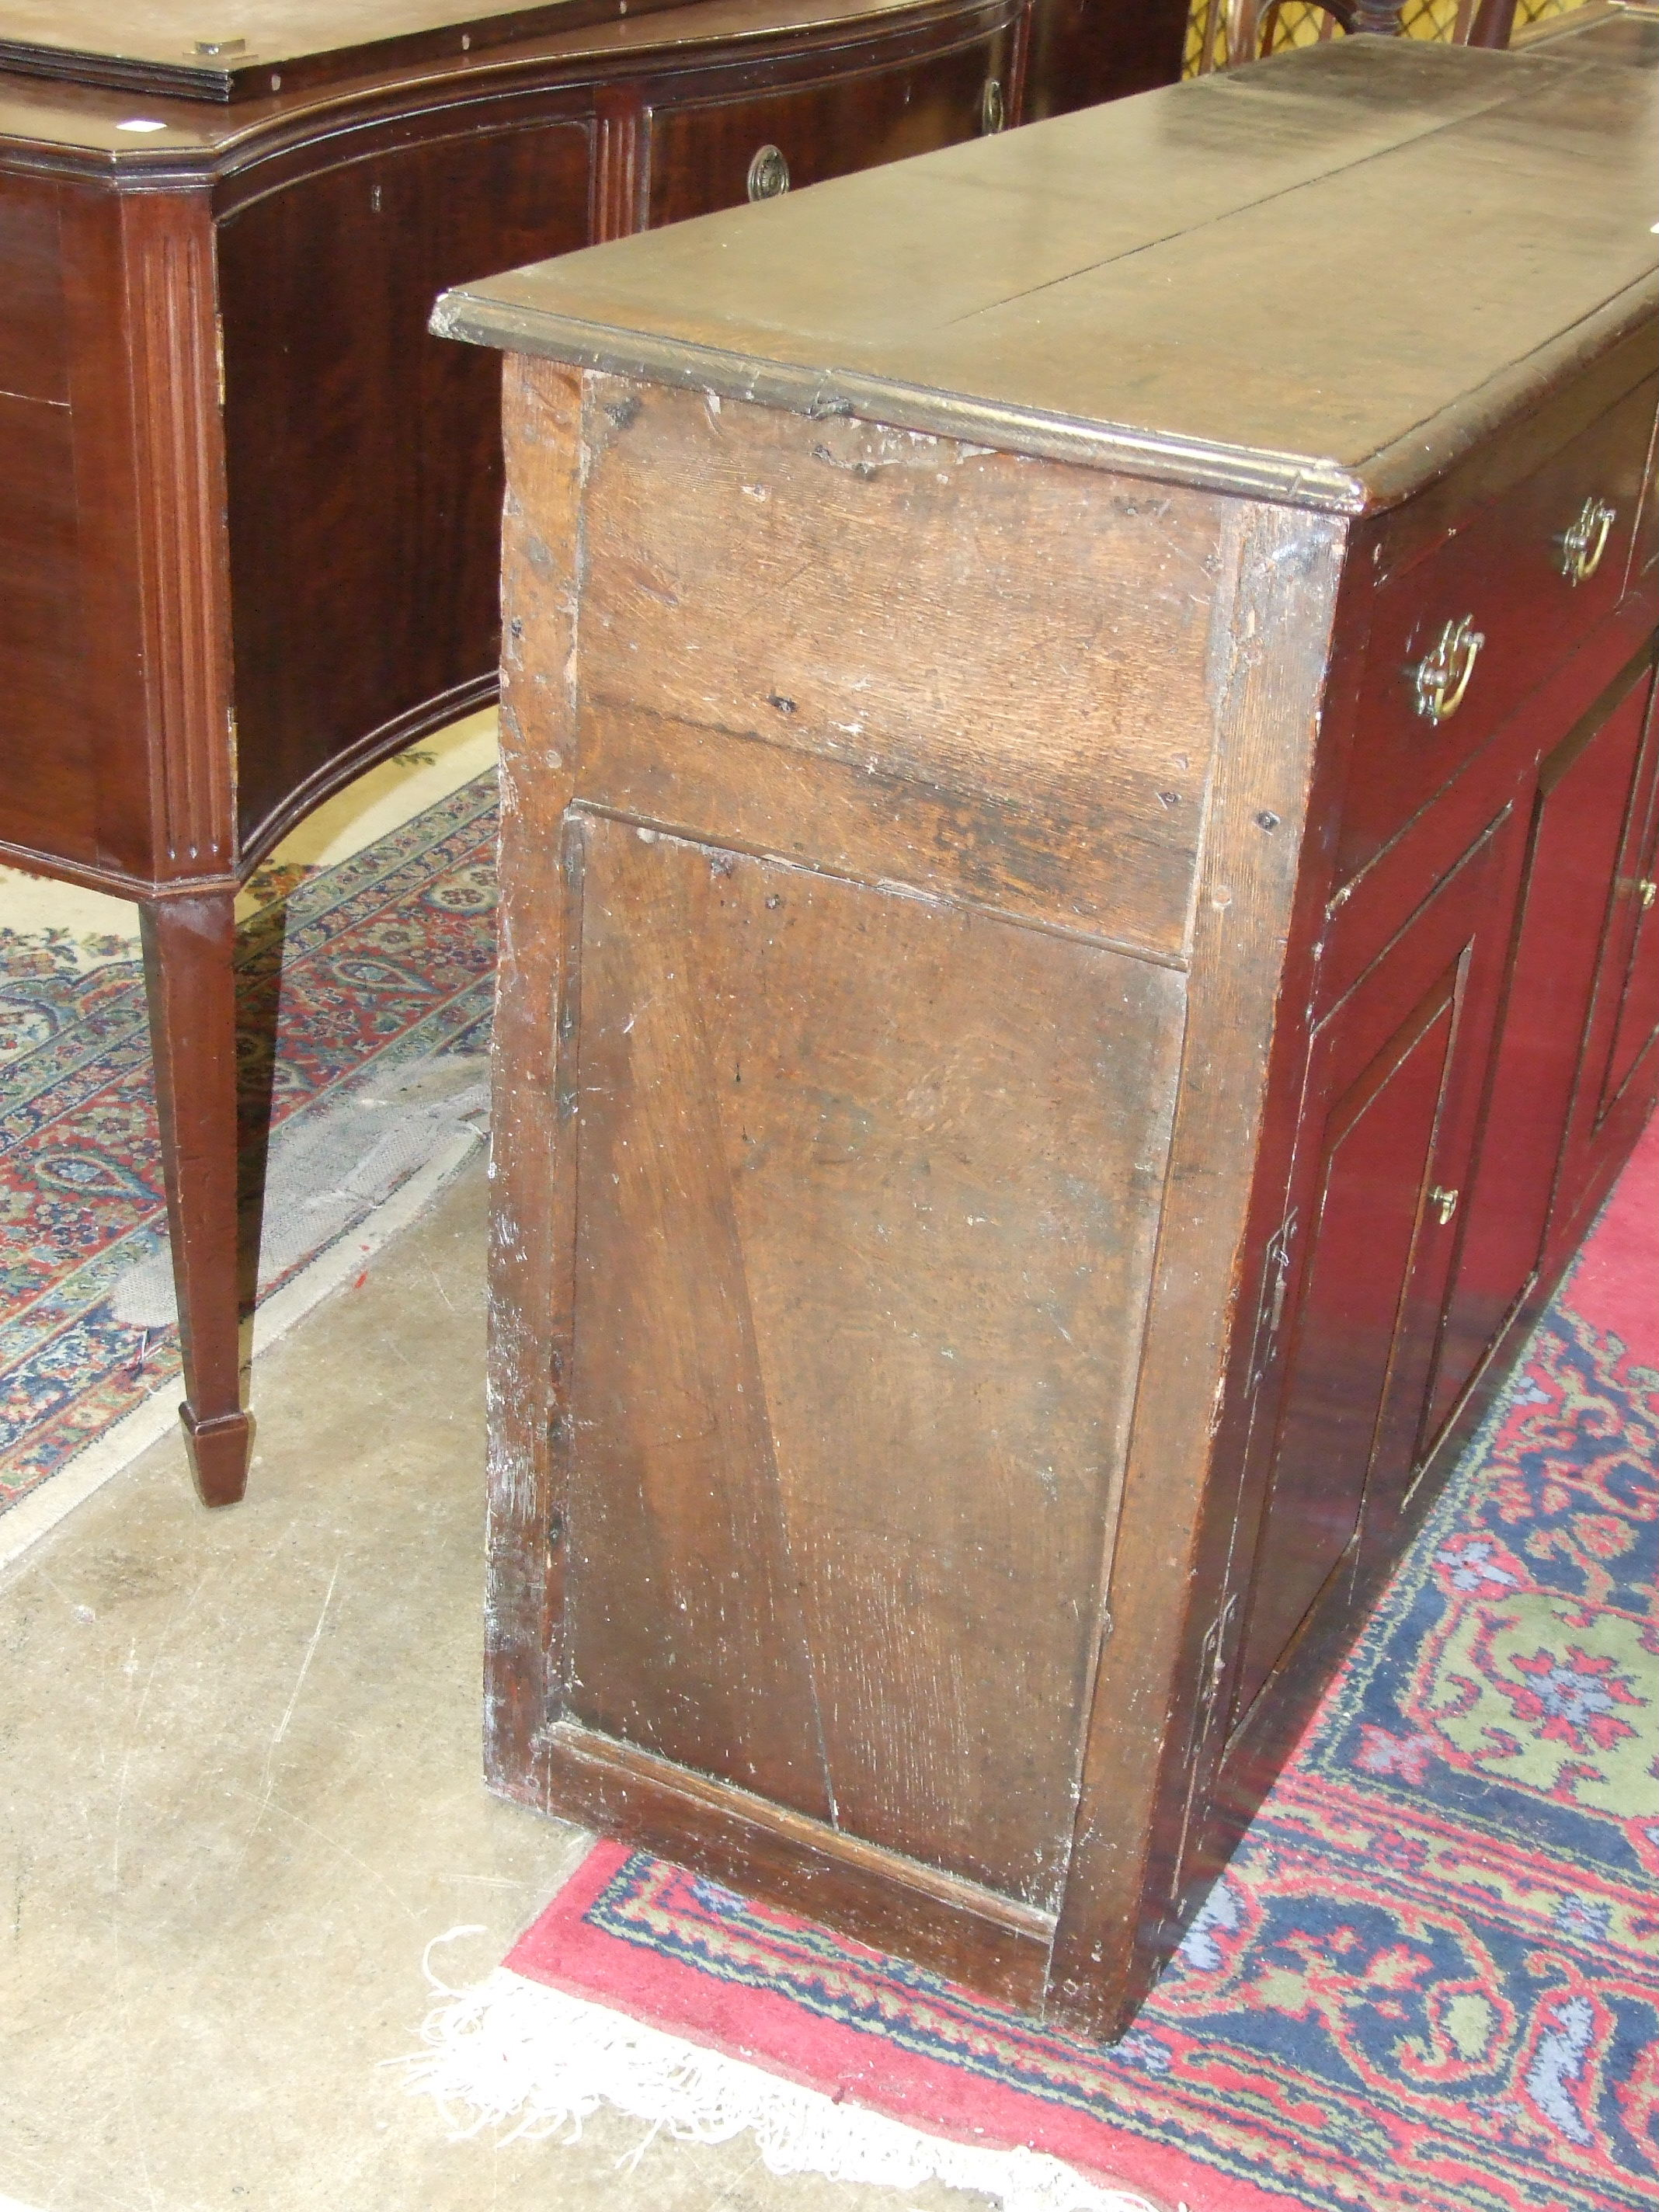 Lot 77 - An 18th century oak dresser base, the rectangular top above two frieze drawers, a pair of fielded